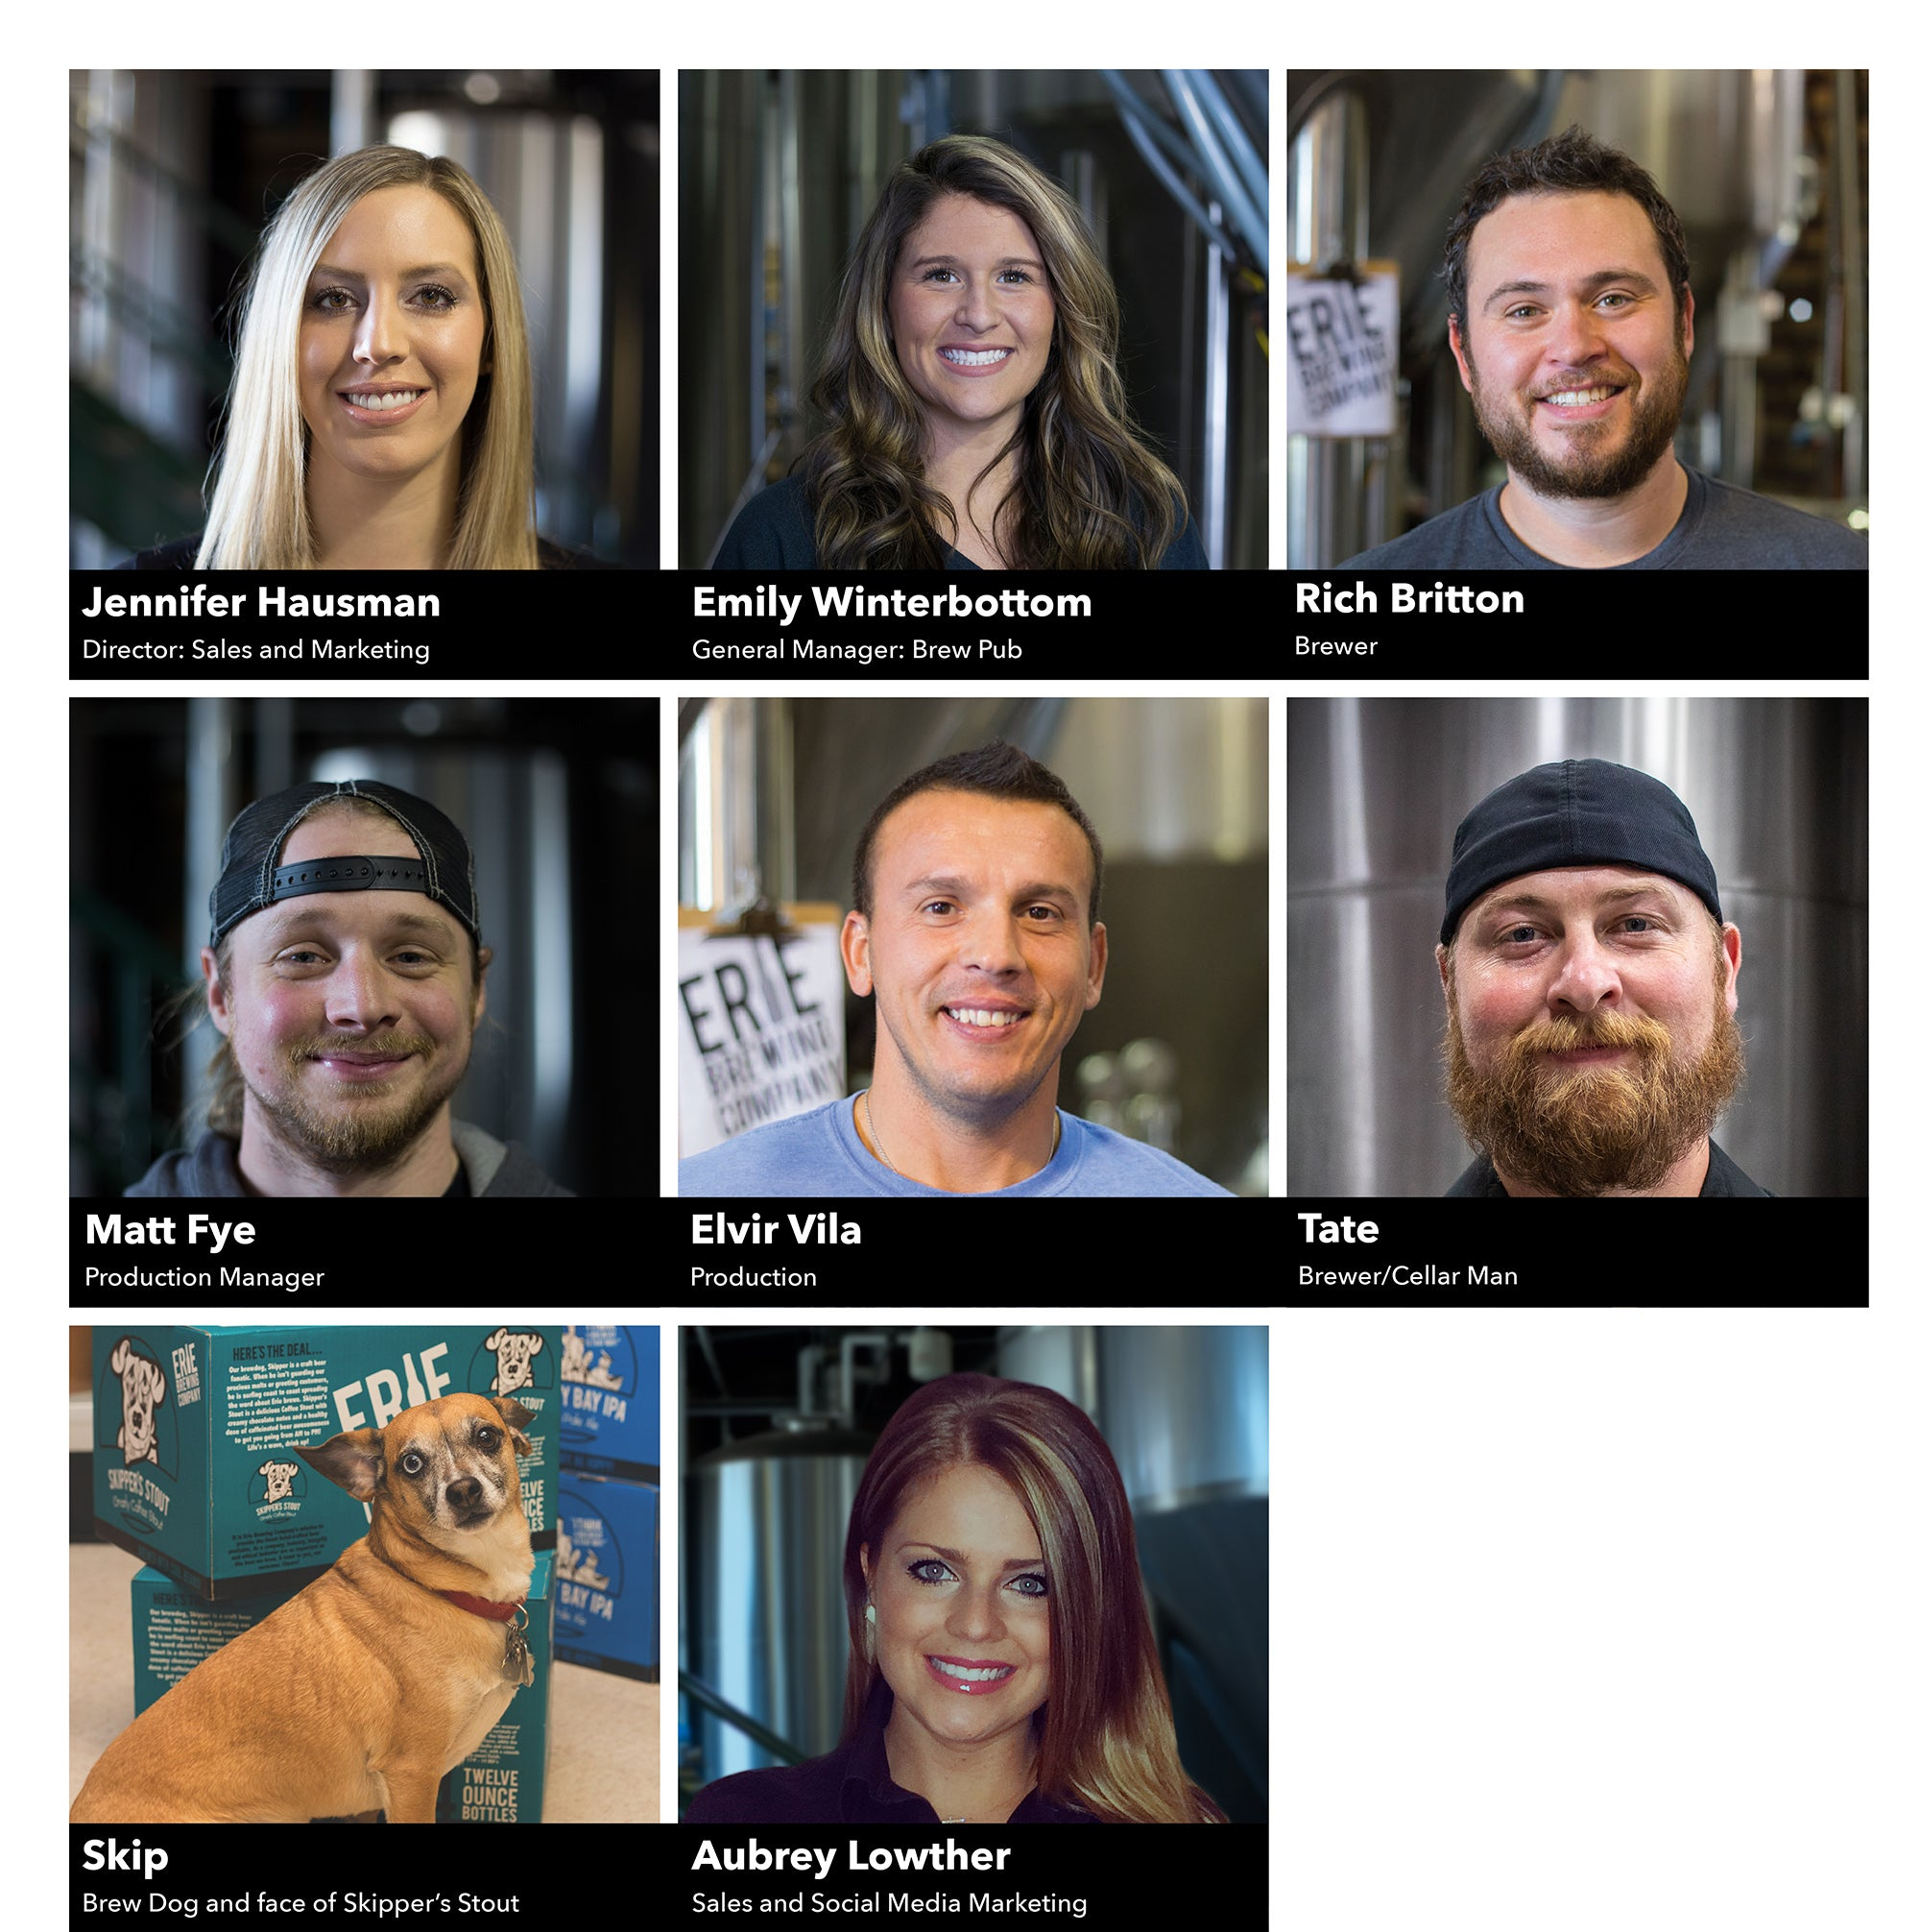 Erie Brewing Employees